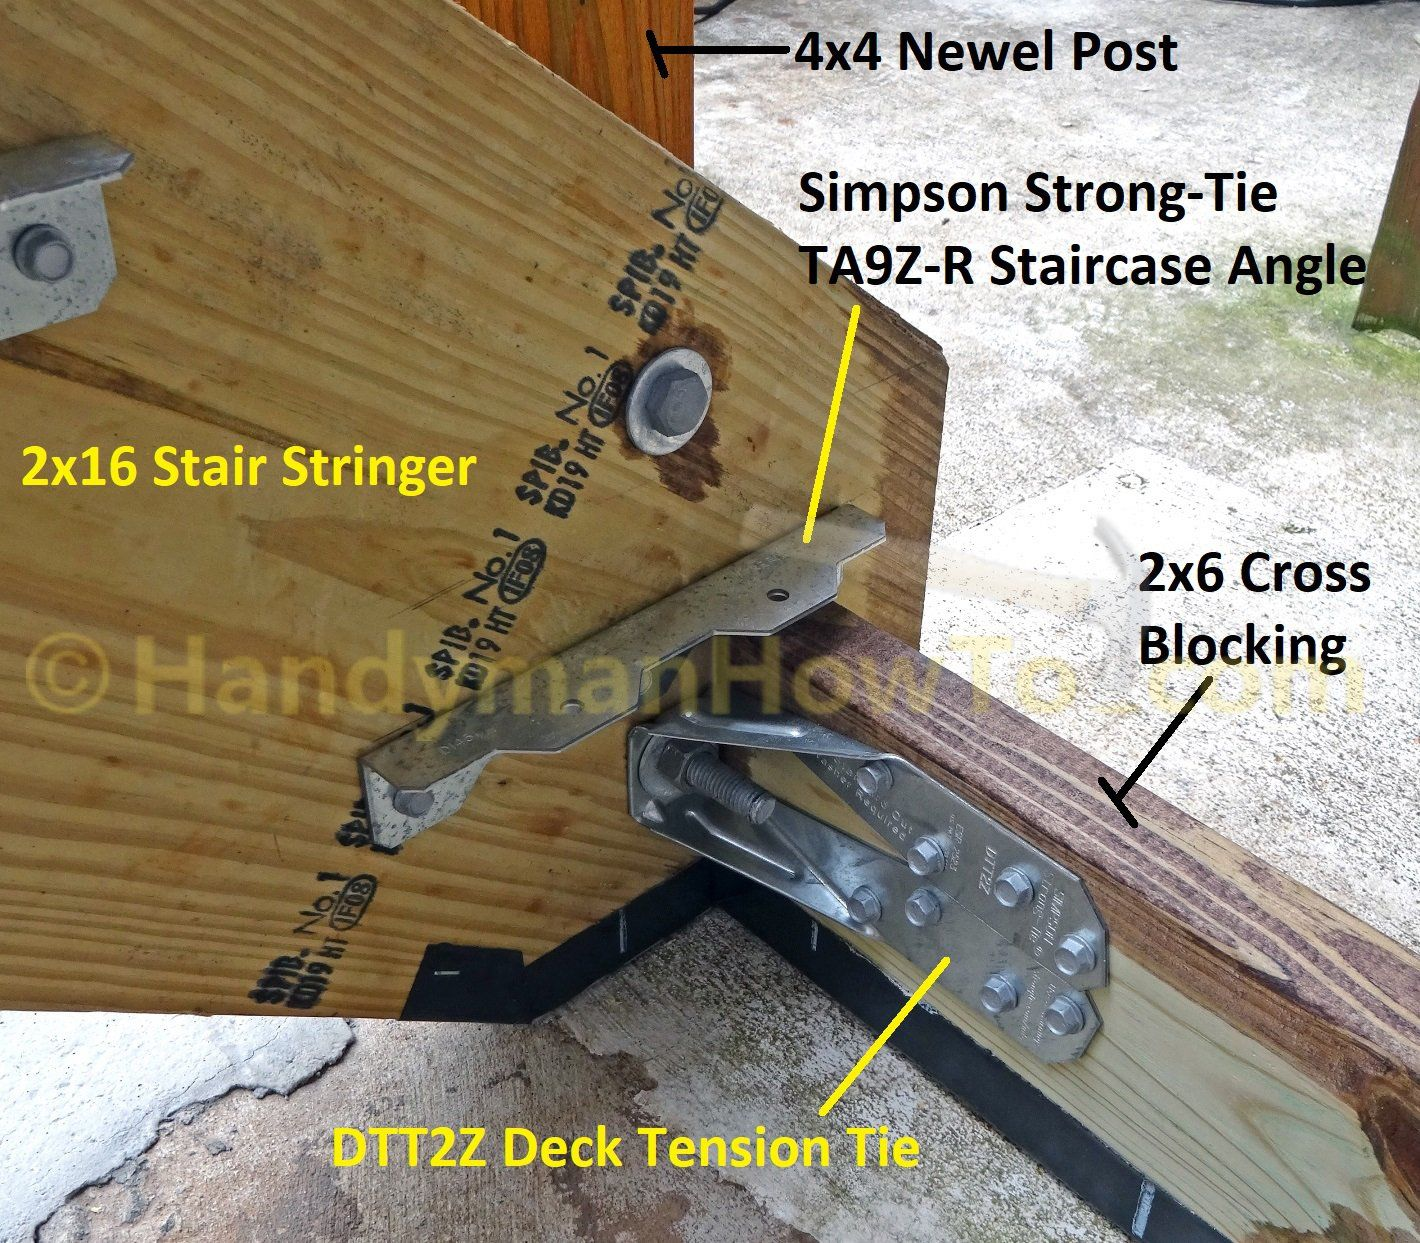 Install Wood Deck Stair Stringers And 4x4 Newel Posts Mount The 2x12 Stringers Anchor 4x4 Newel Posts To A Co Deck Stair Stringer Stairs Stringer Deck Stairs